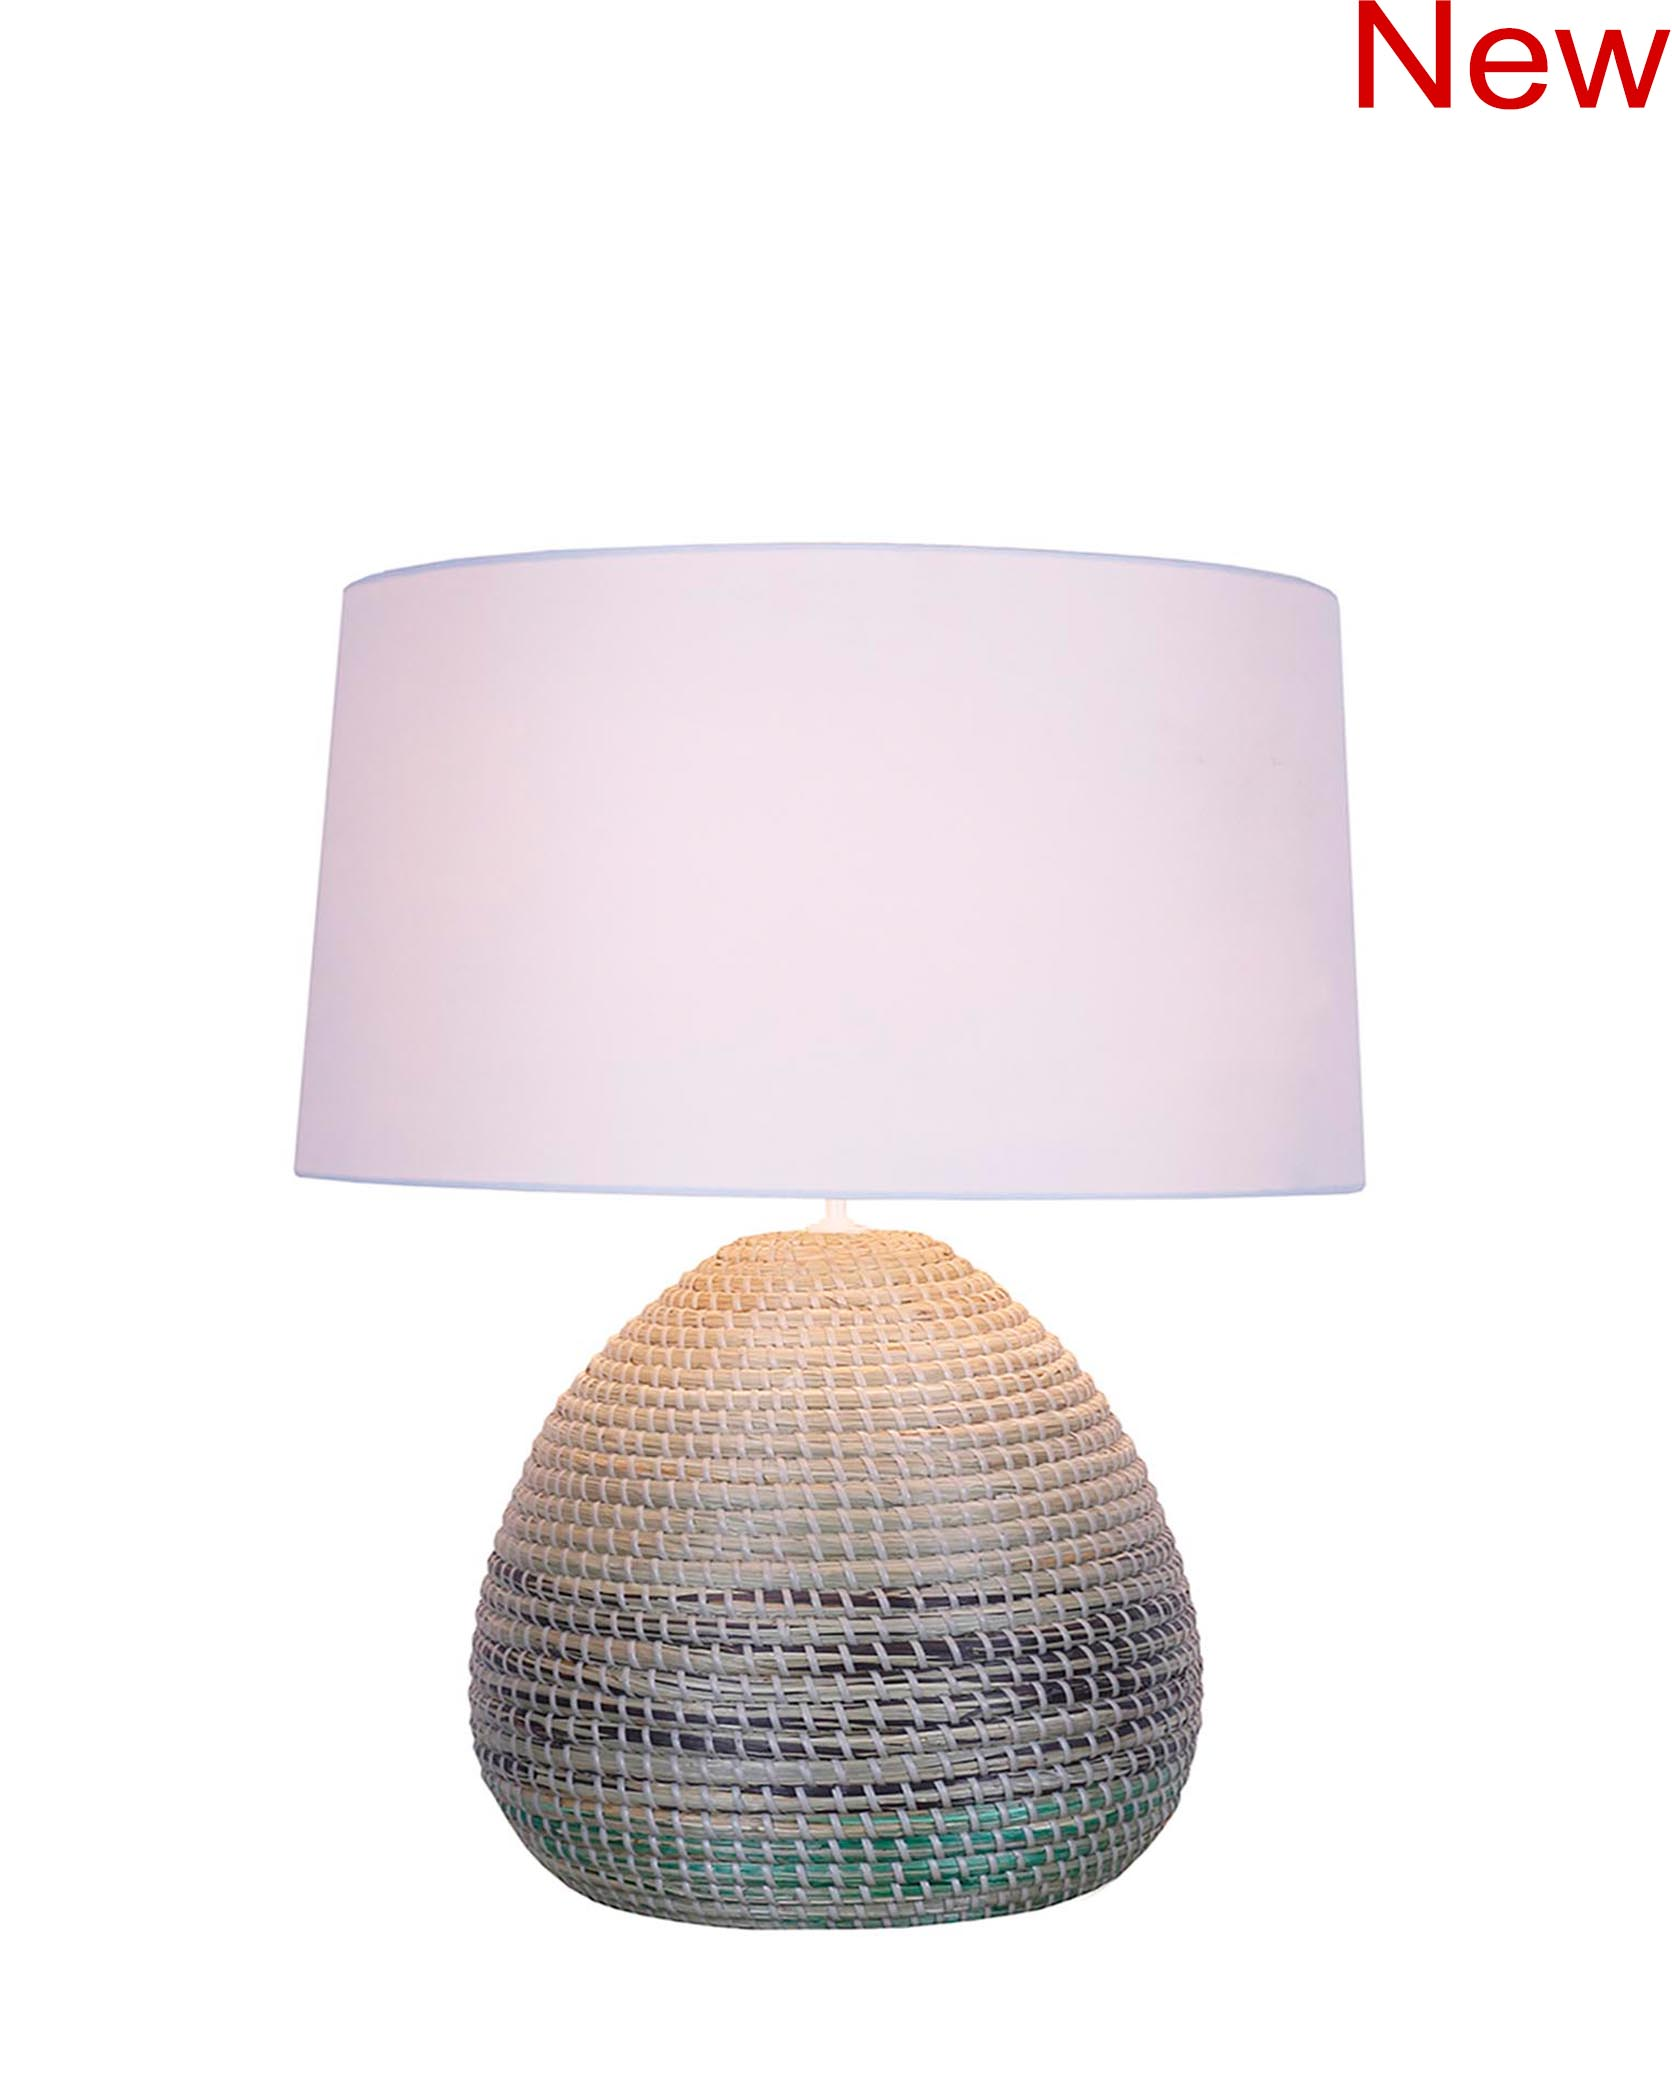 Seagrass table lamp product photo #2